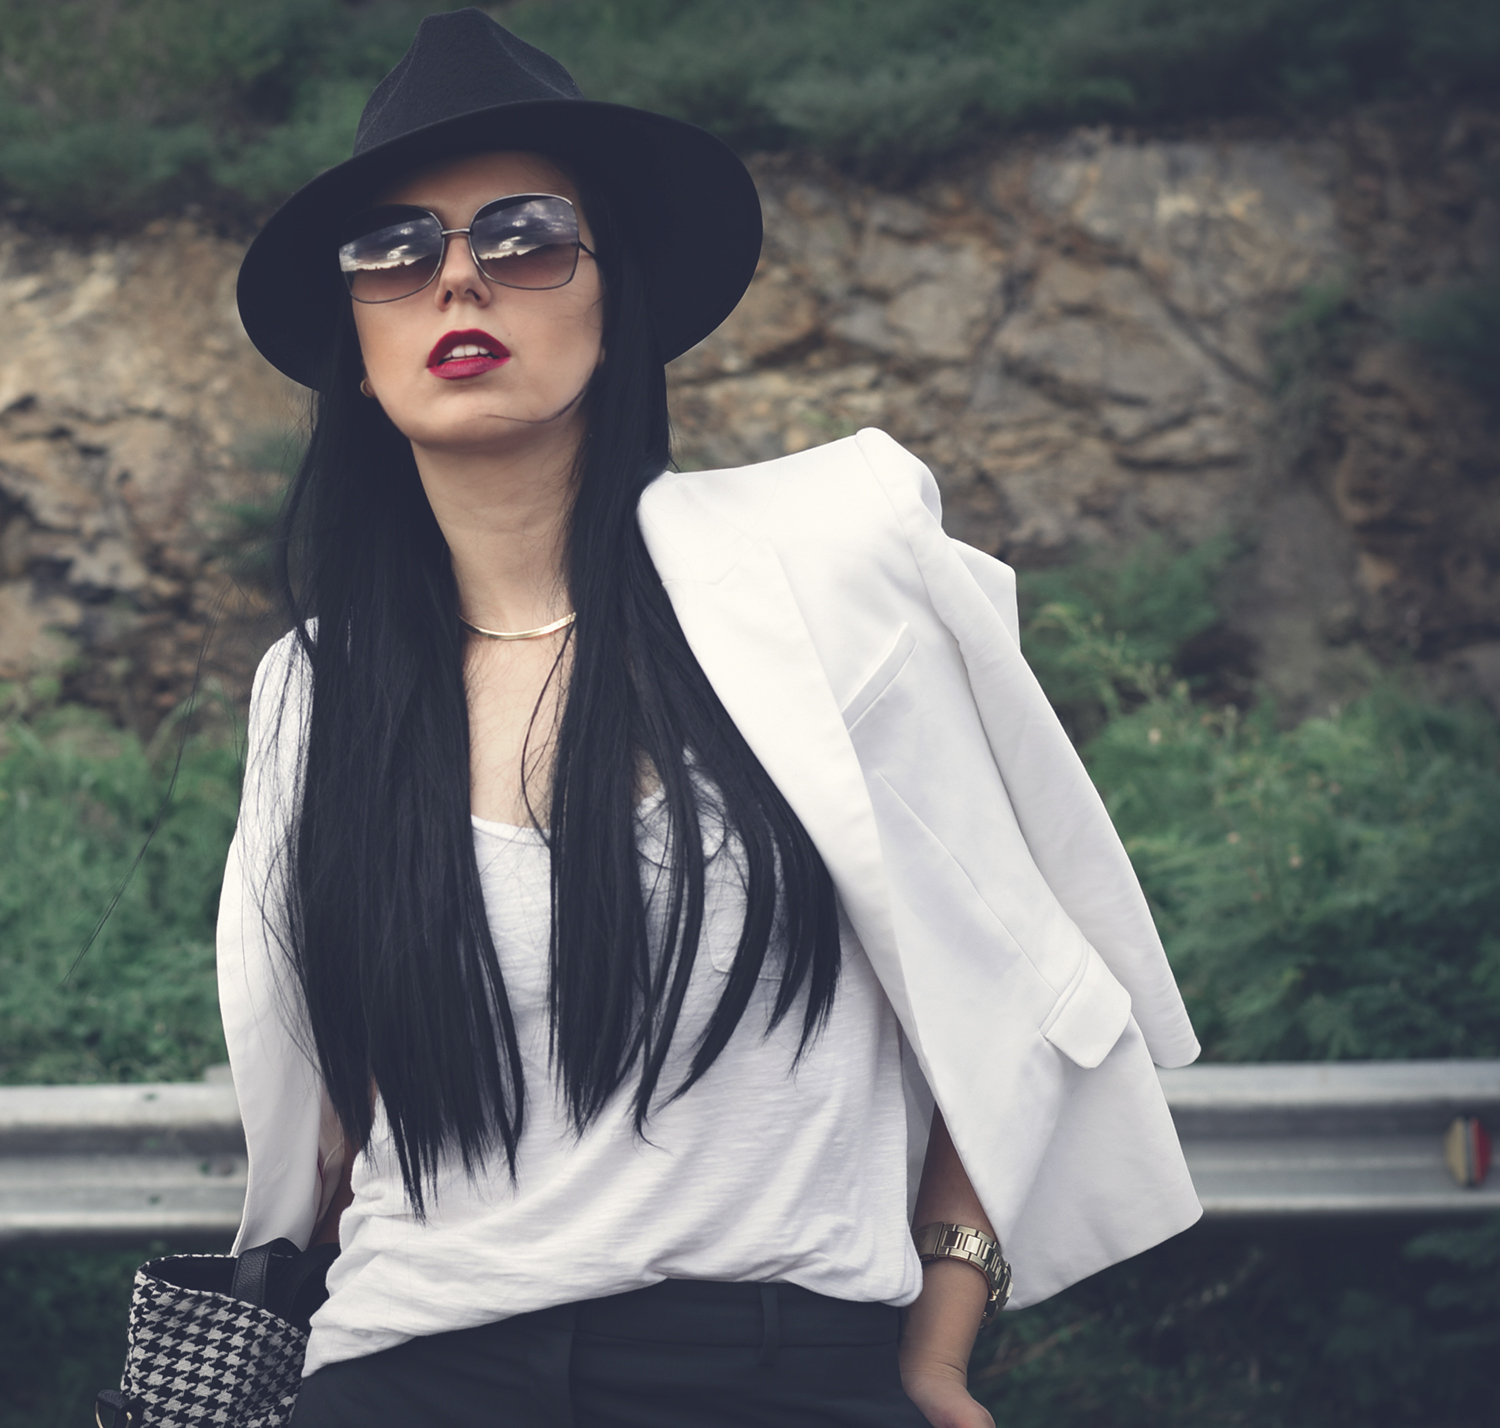 black_hat-white-blazer-long-straight-hair-chic-model-photography-fashion-blogger-outfit-minimalist (2)